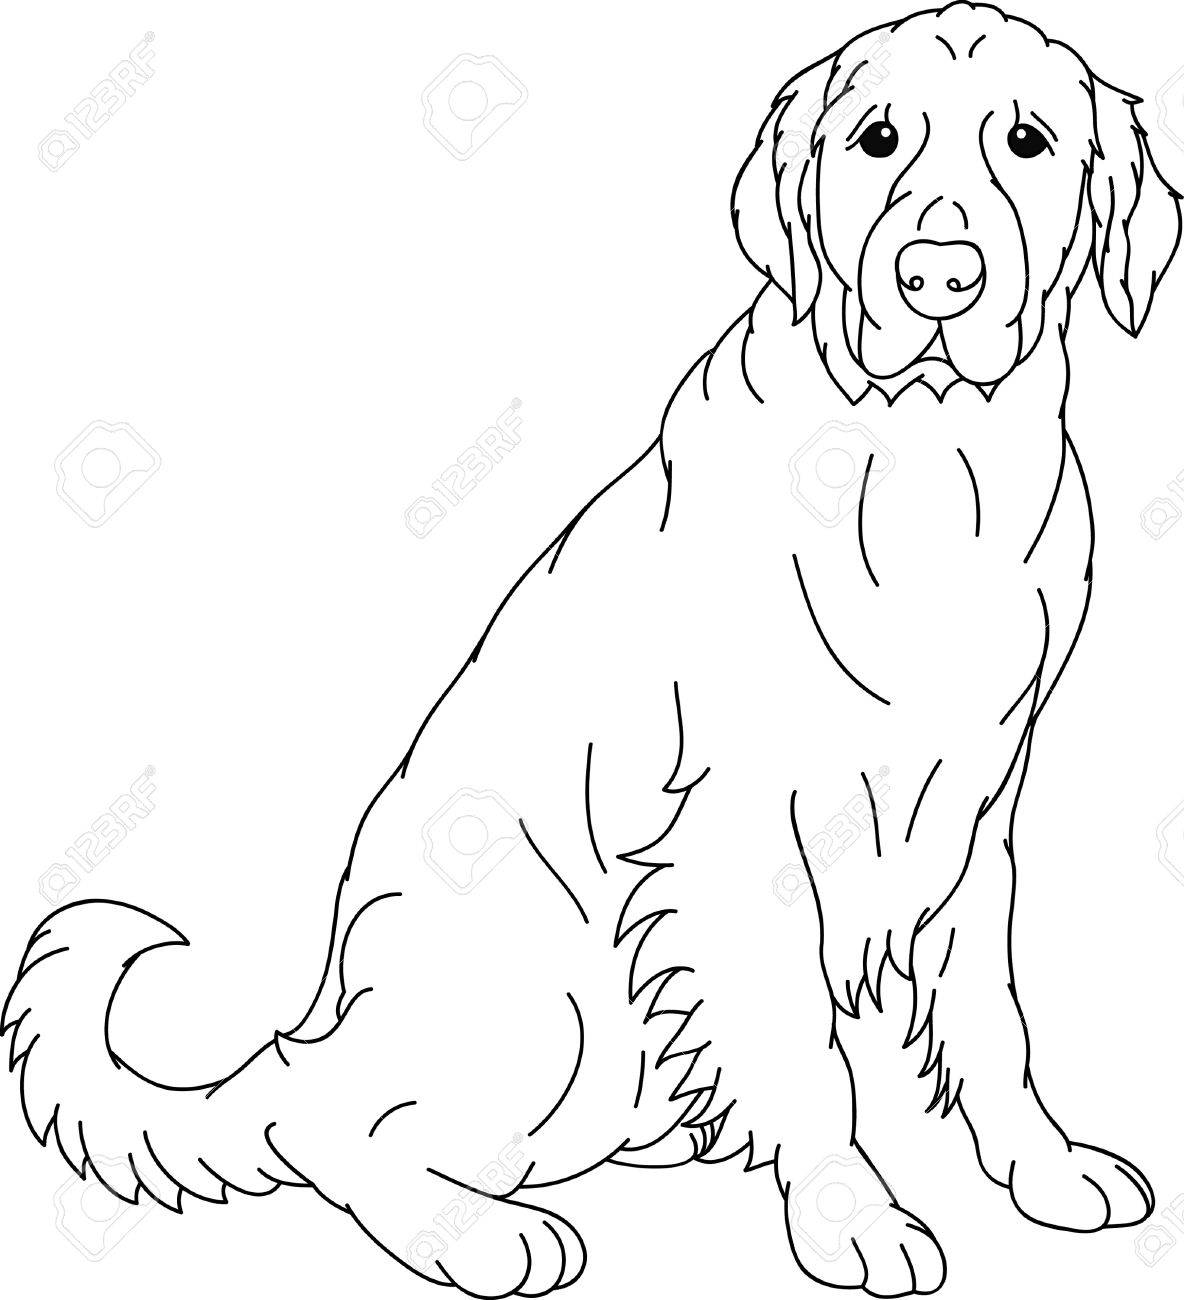 Outline Of Dogs Face Stock Photos & Pictures. Royalty Free Outline ...